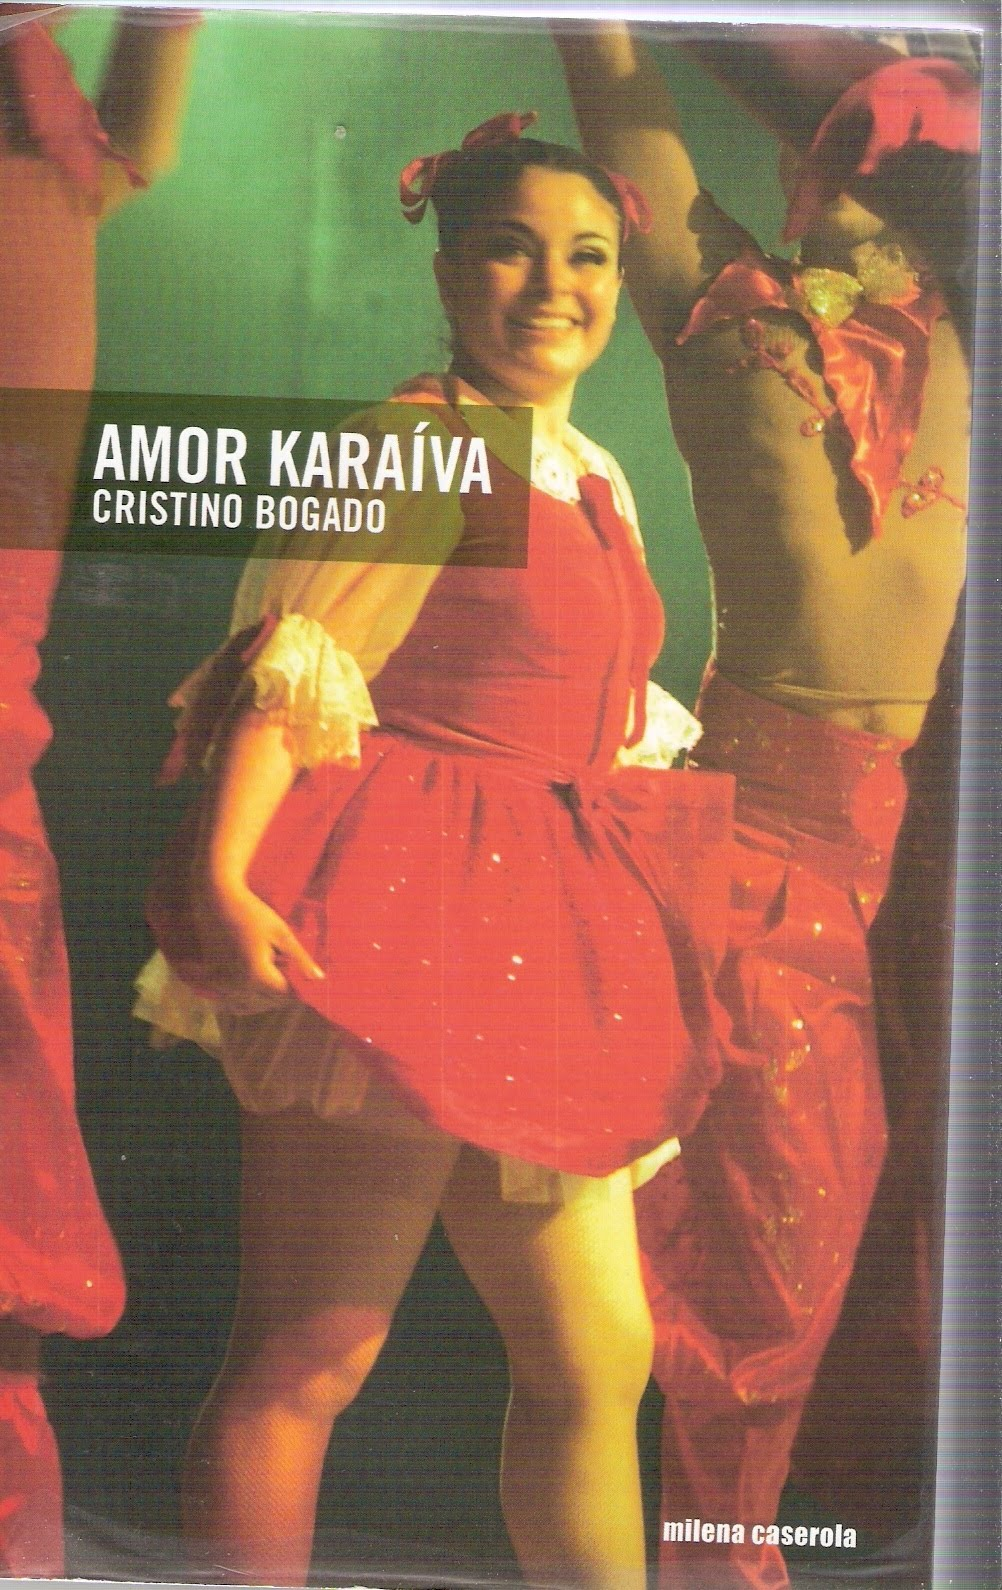 Amor Karava